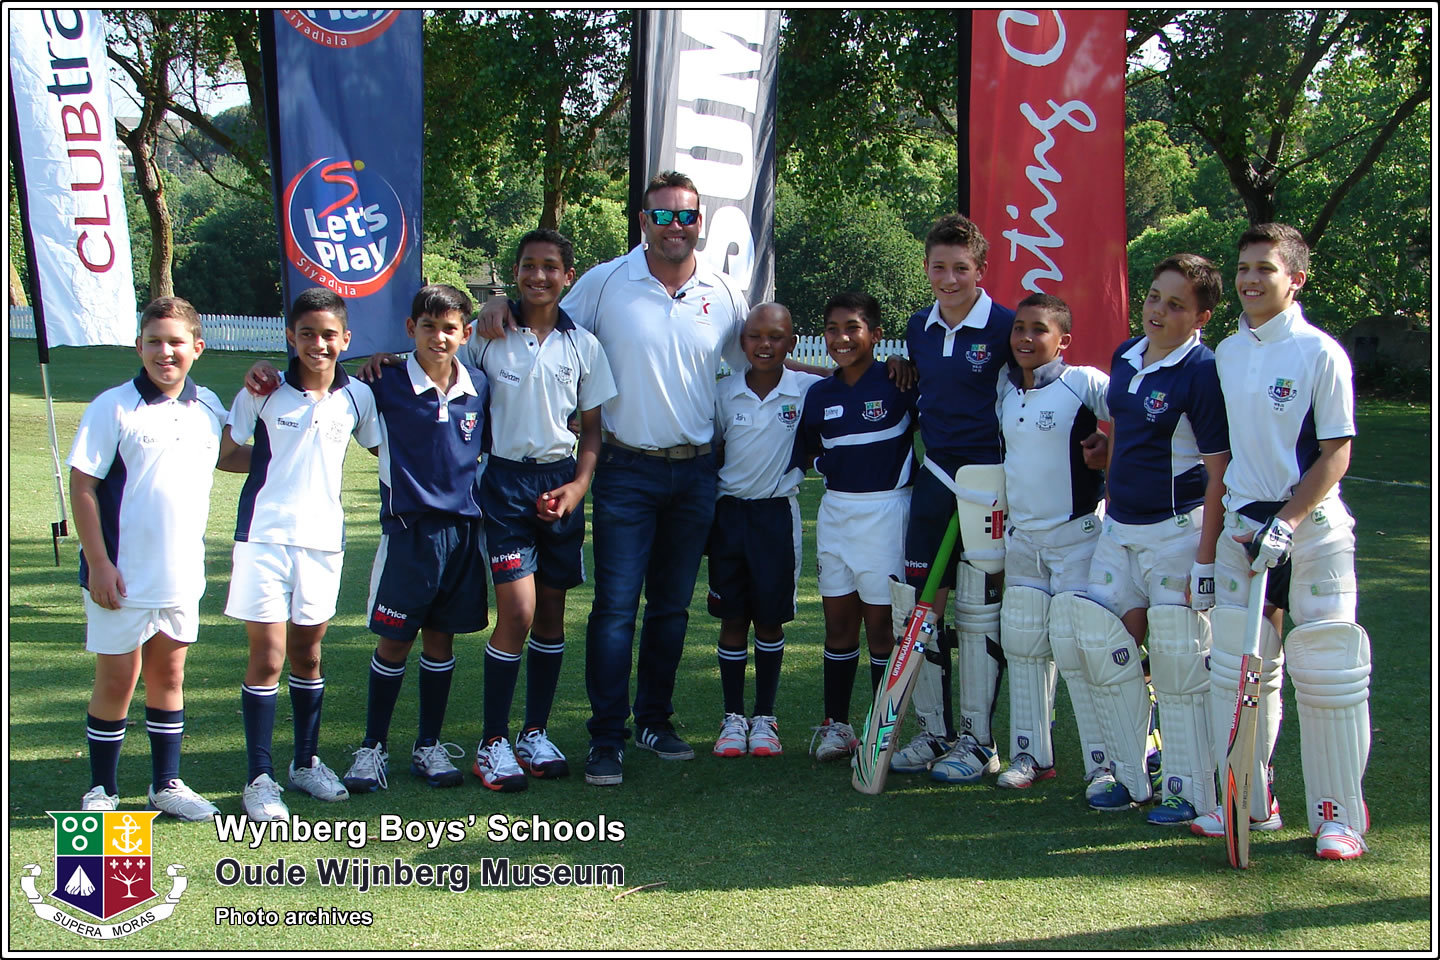 October 2015: Jacques Kallis / Sporting Chance Coaching Clinic